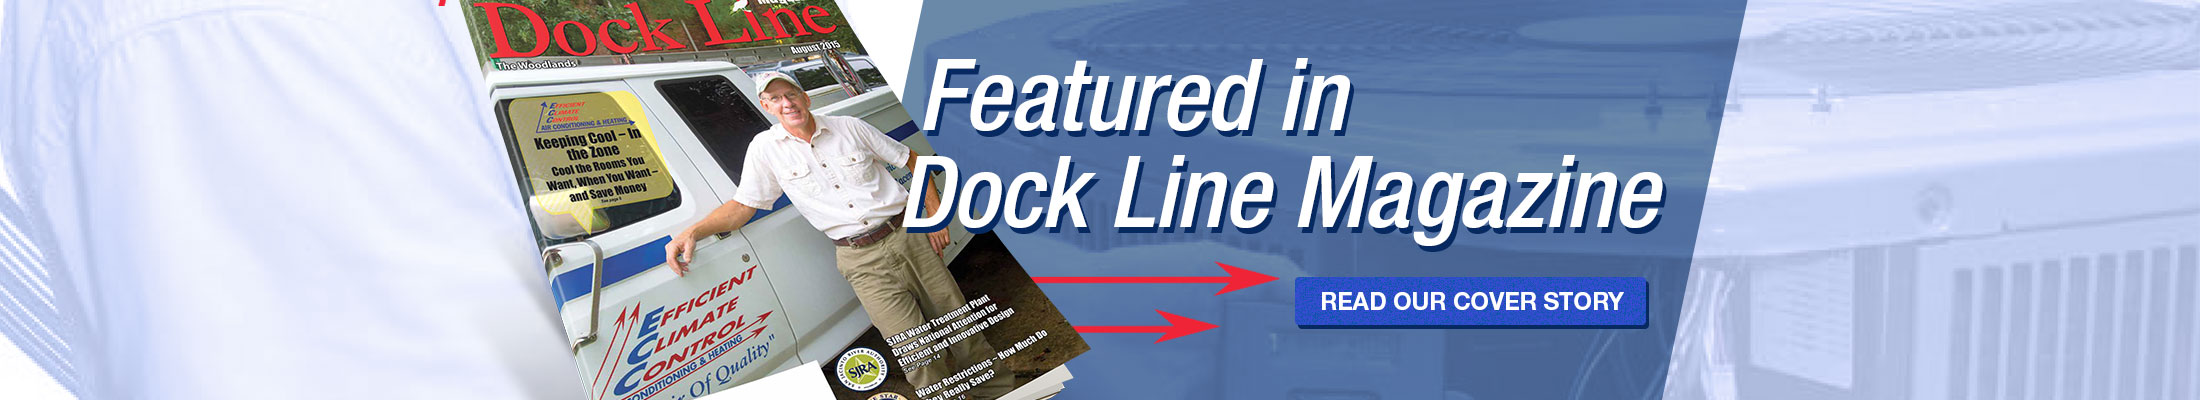 Efficient Climate Control featured in Dock Line Magazine